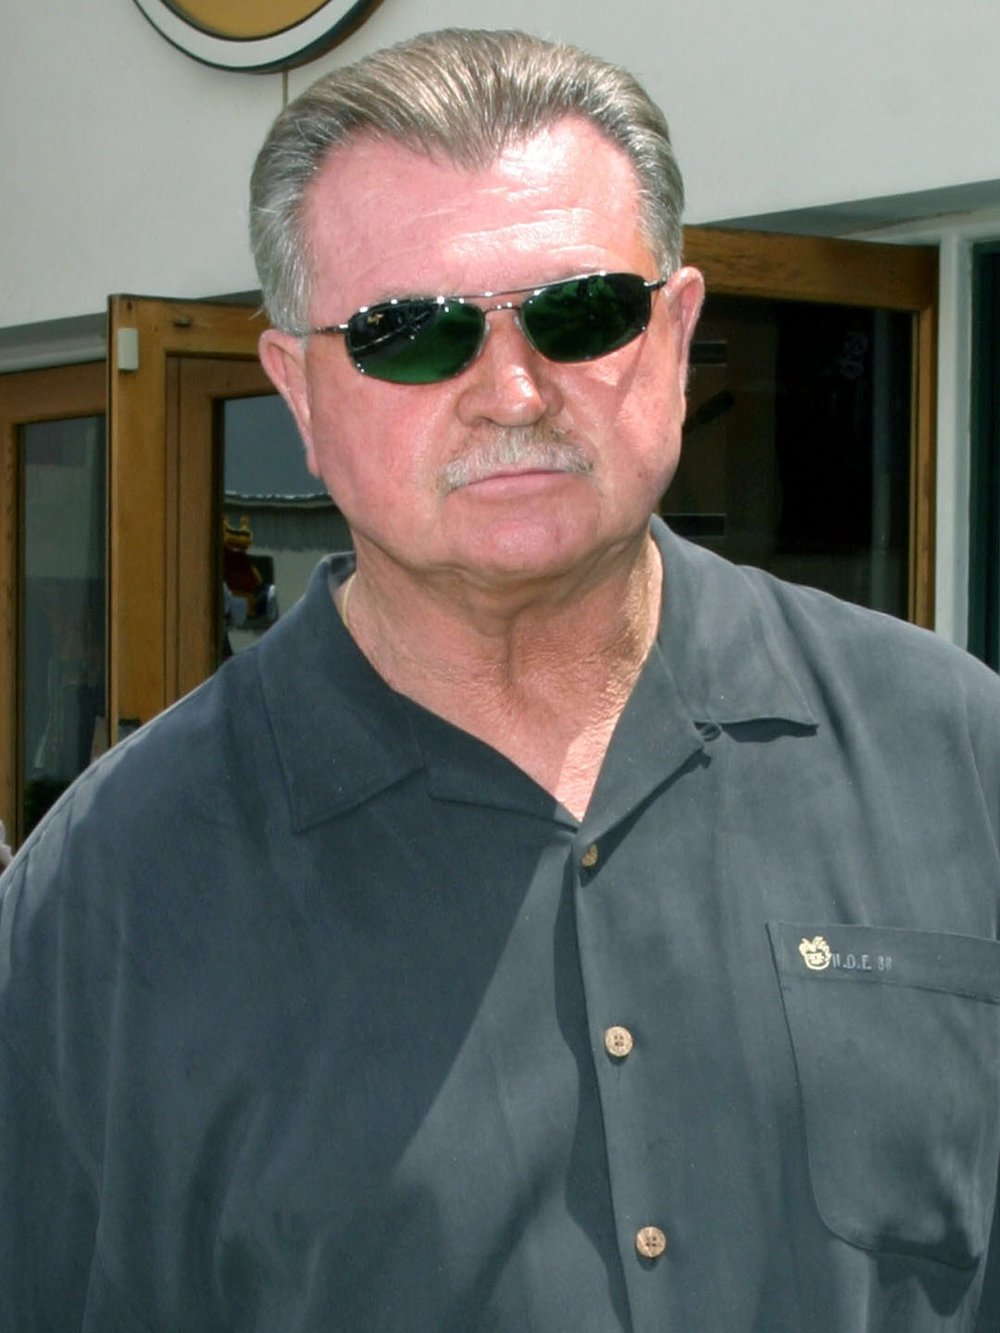 Mike Ditka also resembles prosecutor James Glasgow